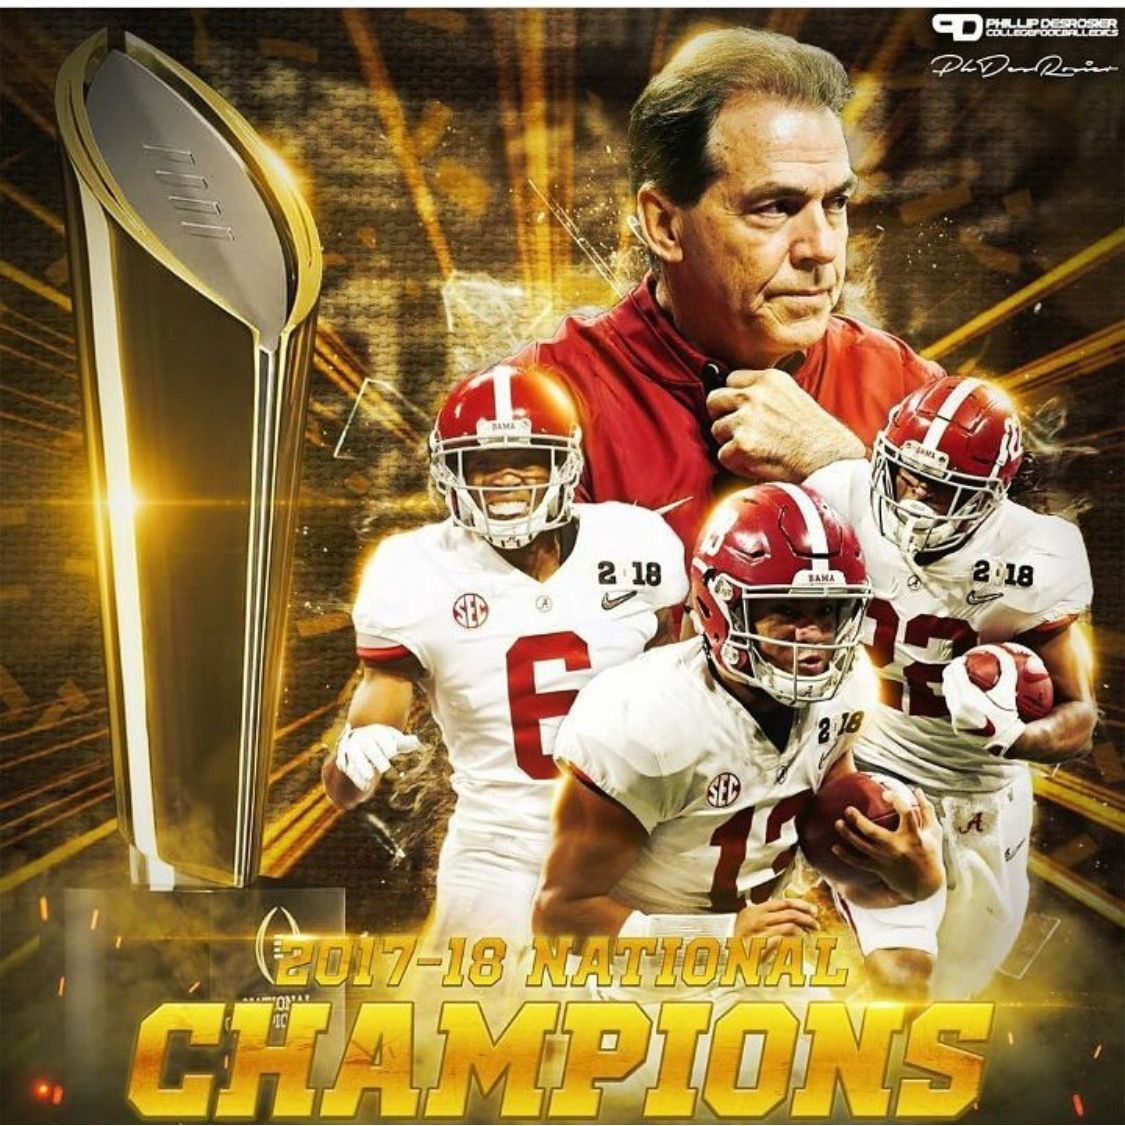 2018 College Football Playoff National Championship The